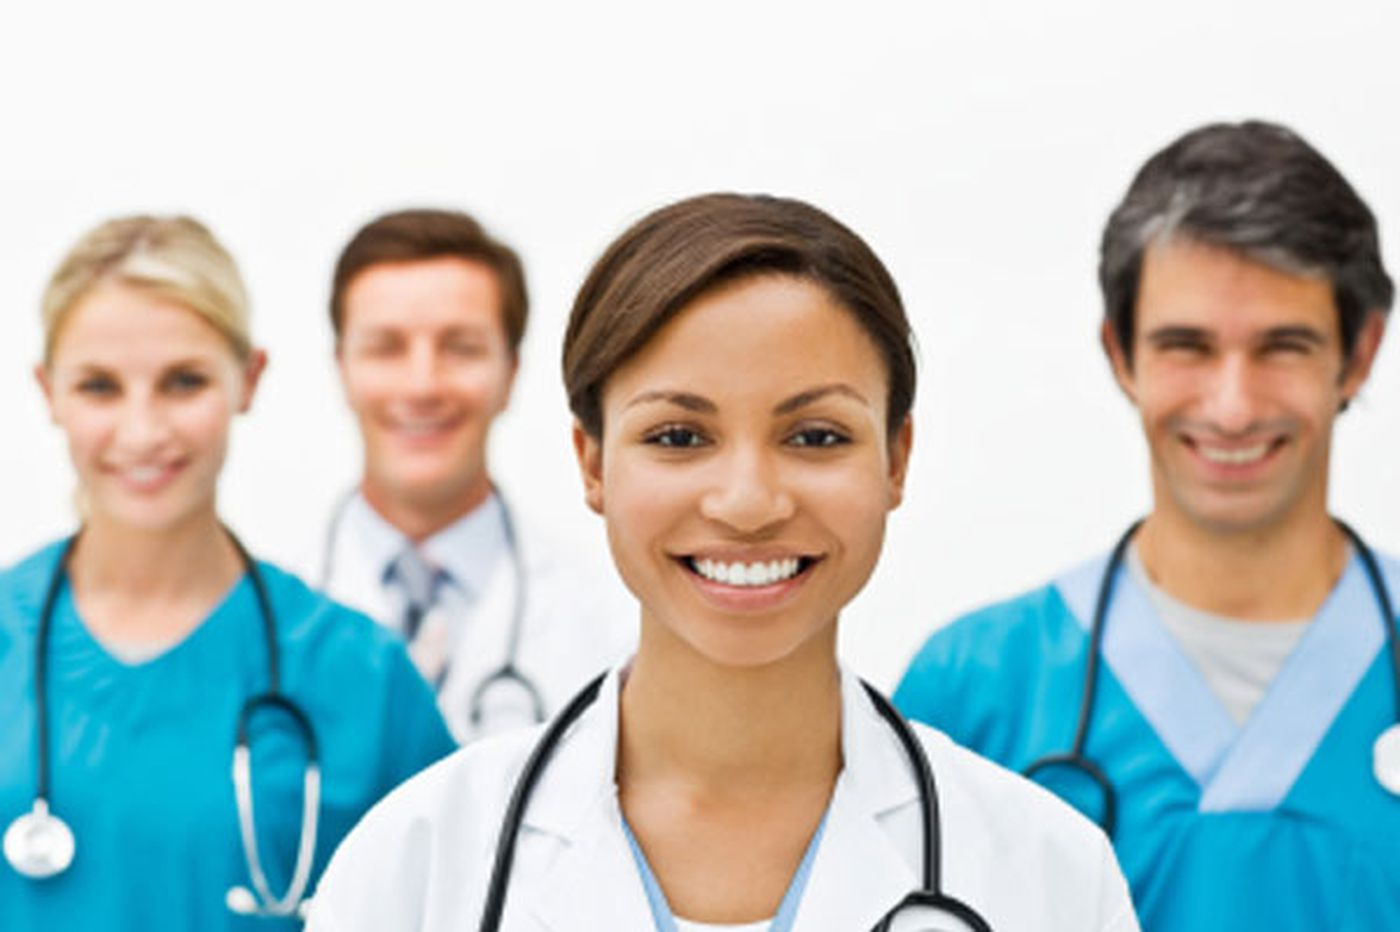 The complexities of race and racism in healthcare